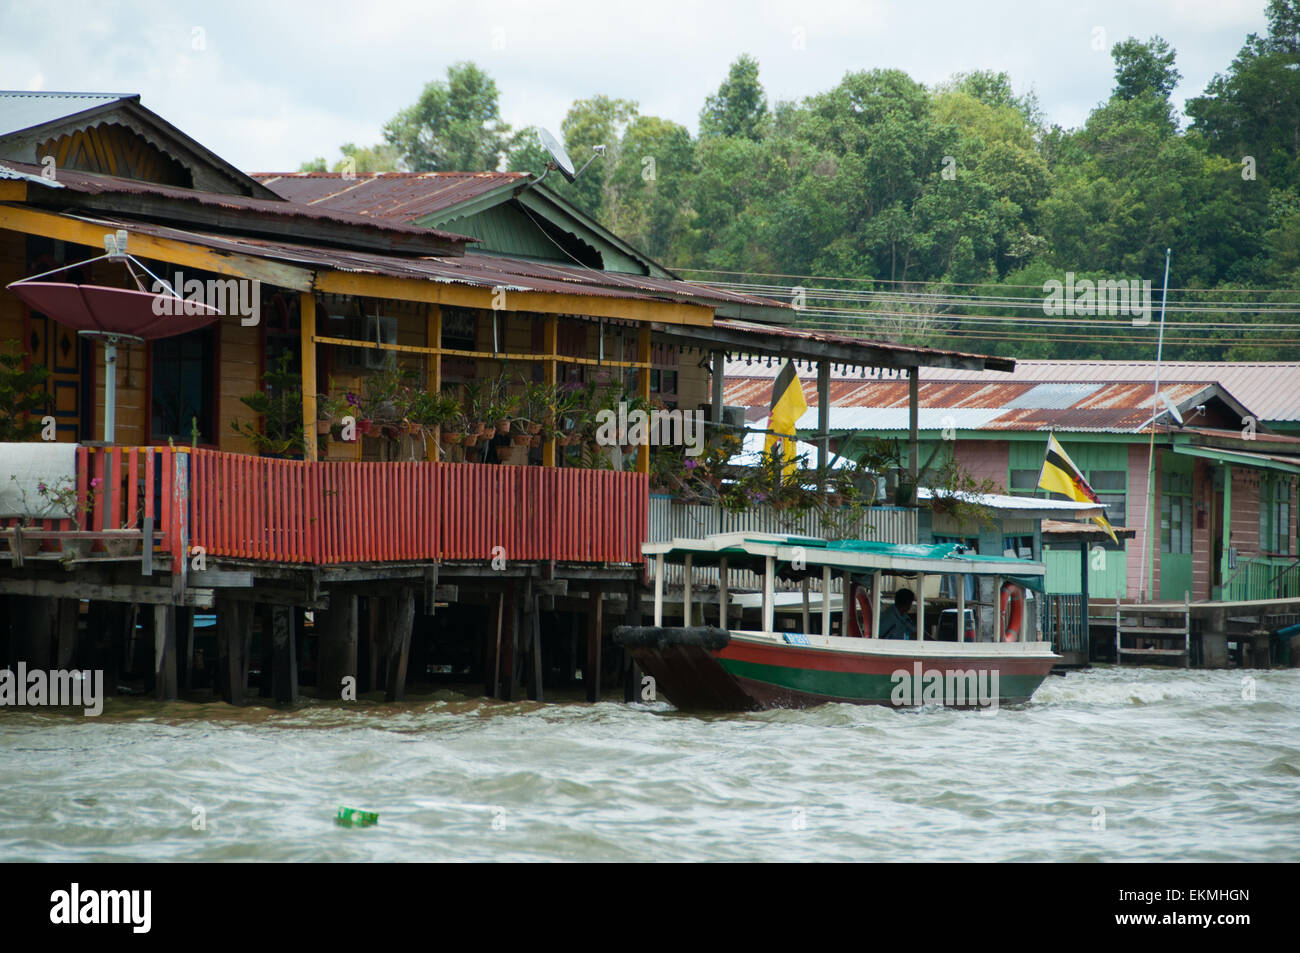 The Water village of Kampong Ayer, Bandar Seri Begawan, Brunei - Stock Image